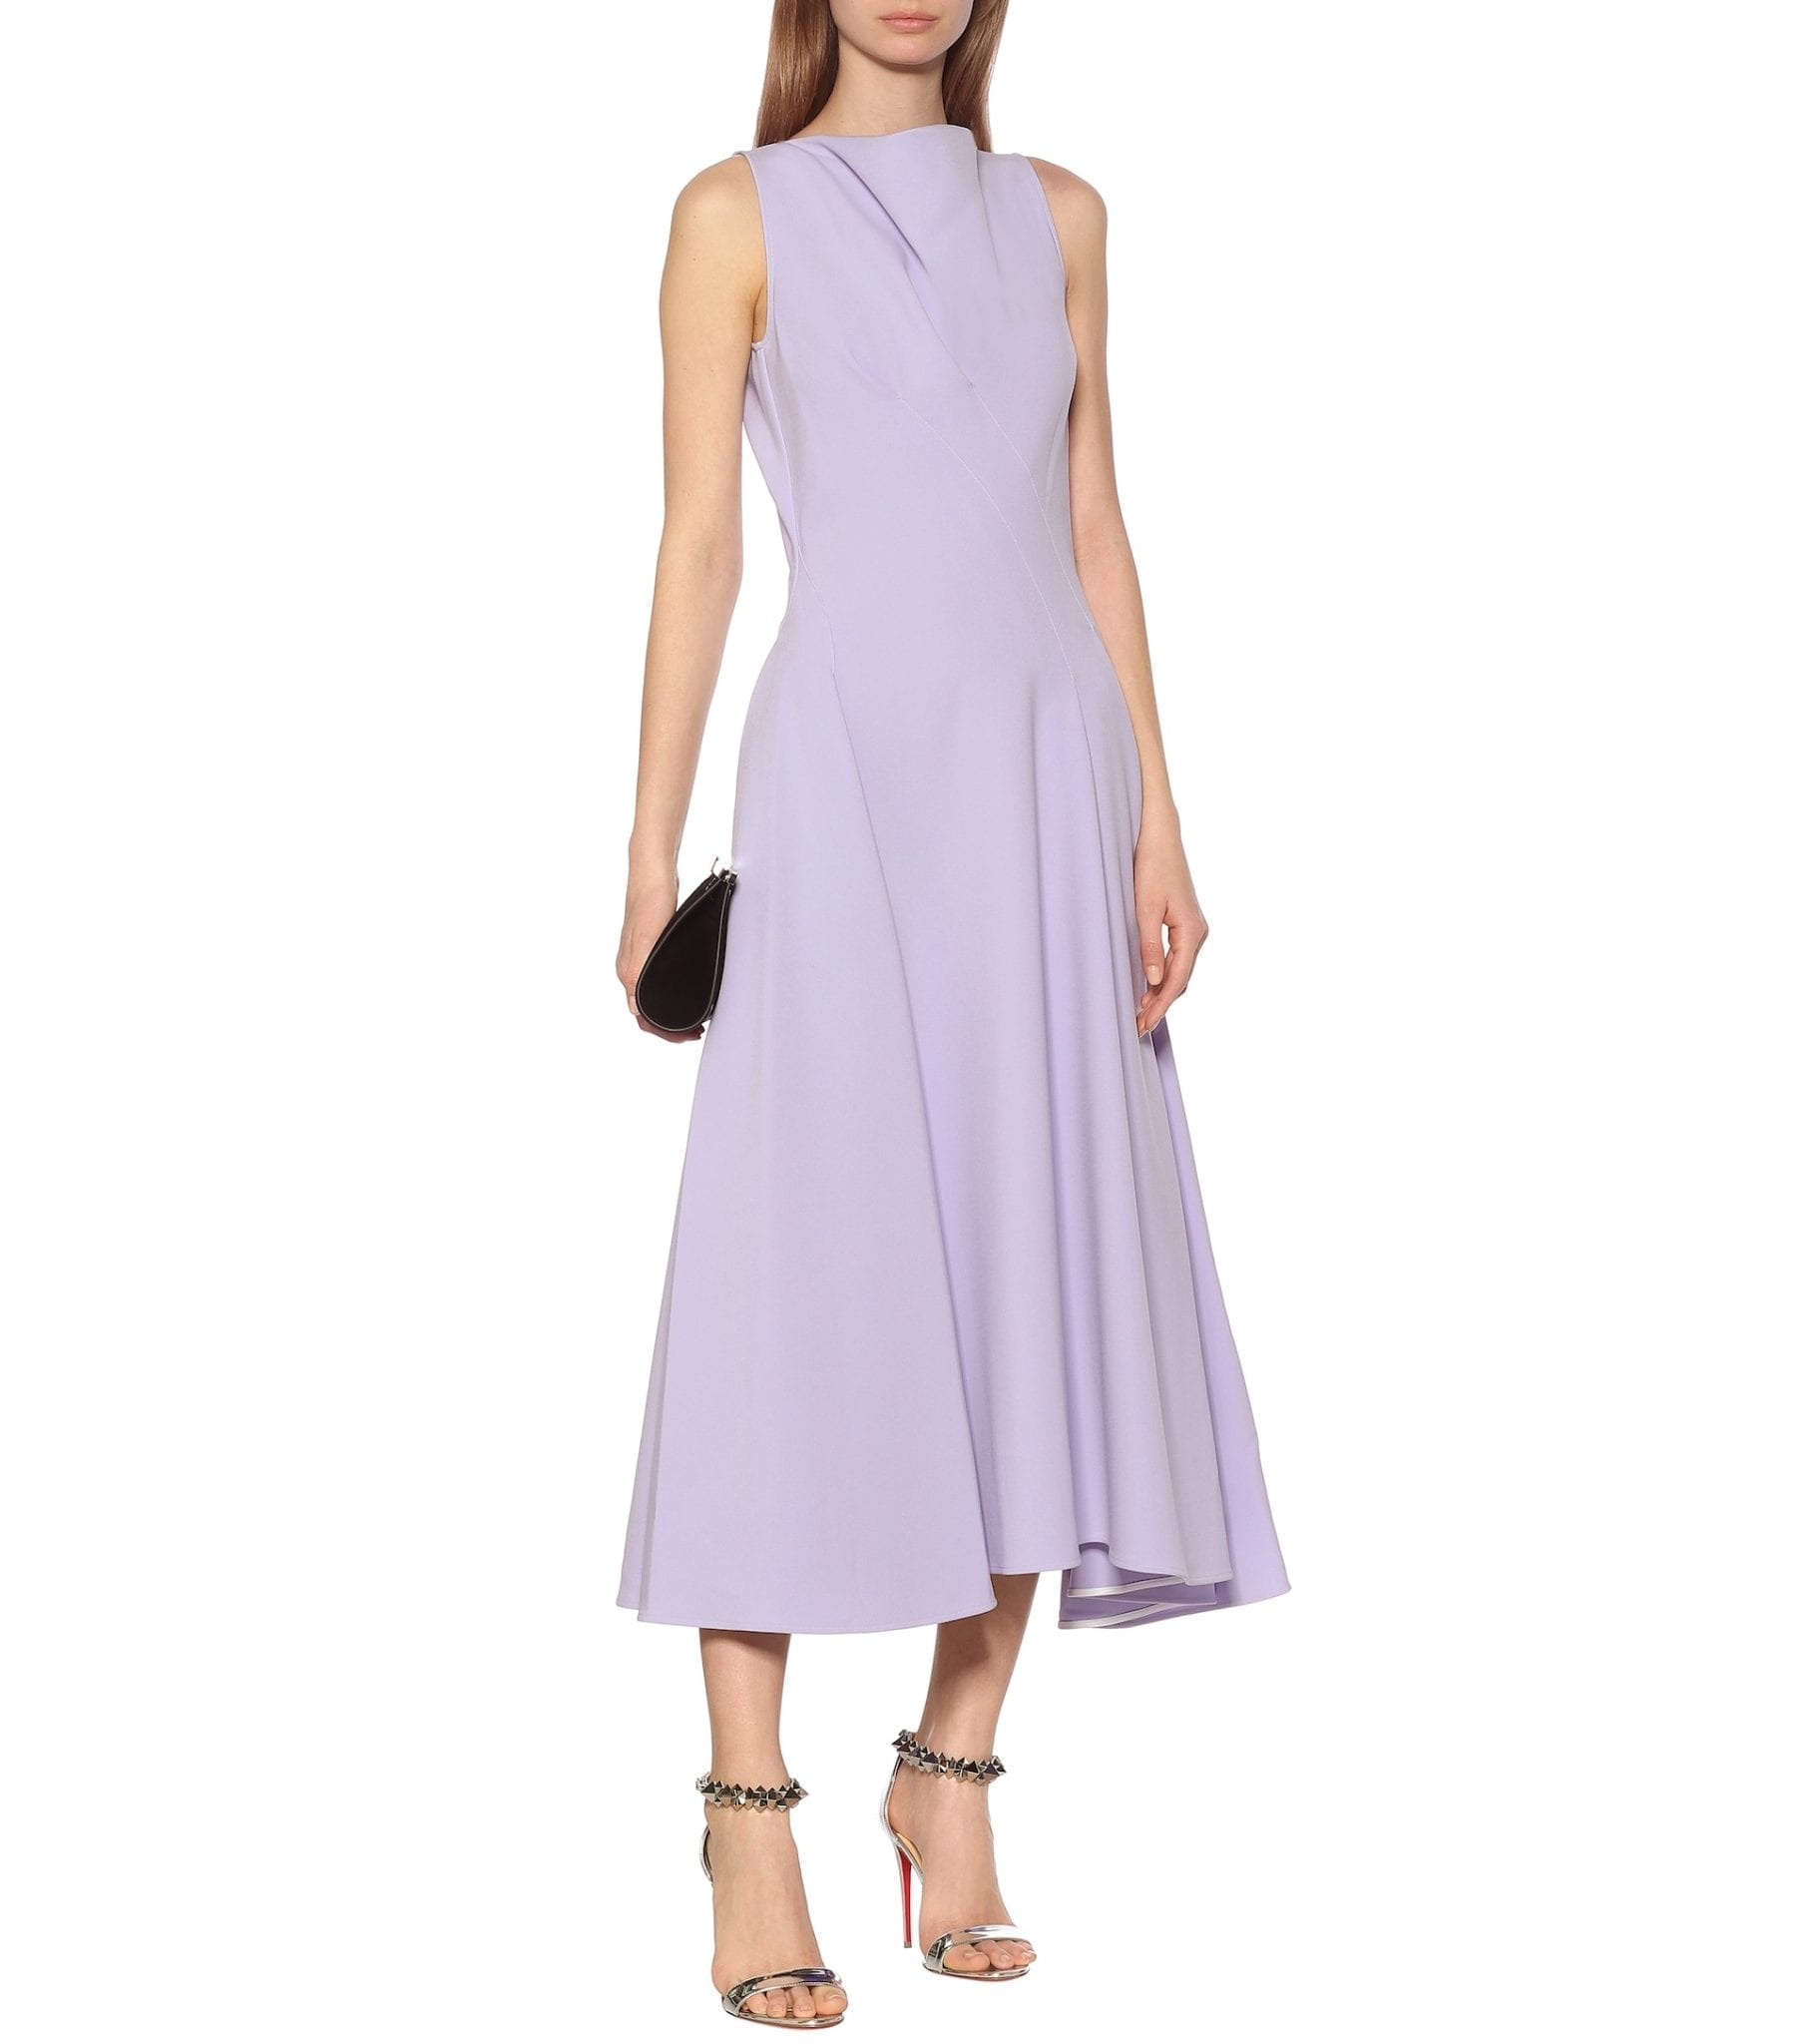 MATICEVSKI Assured Swing Crêpe Midi Dress